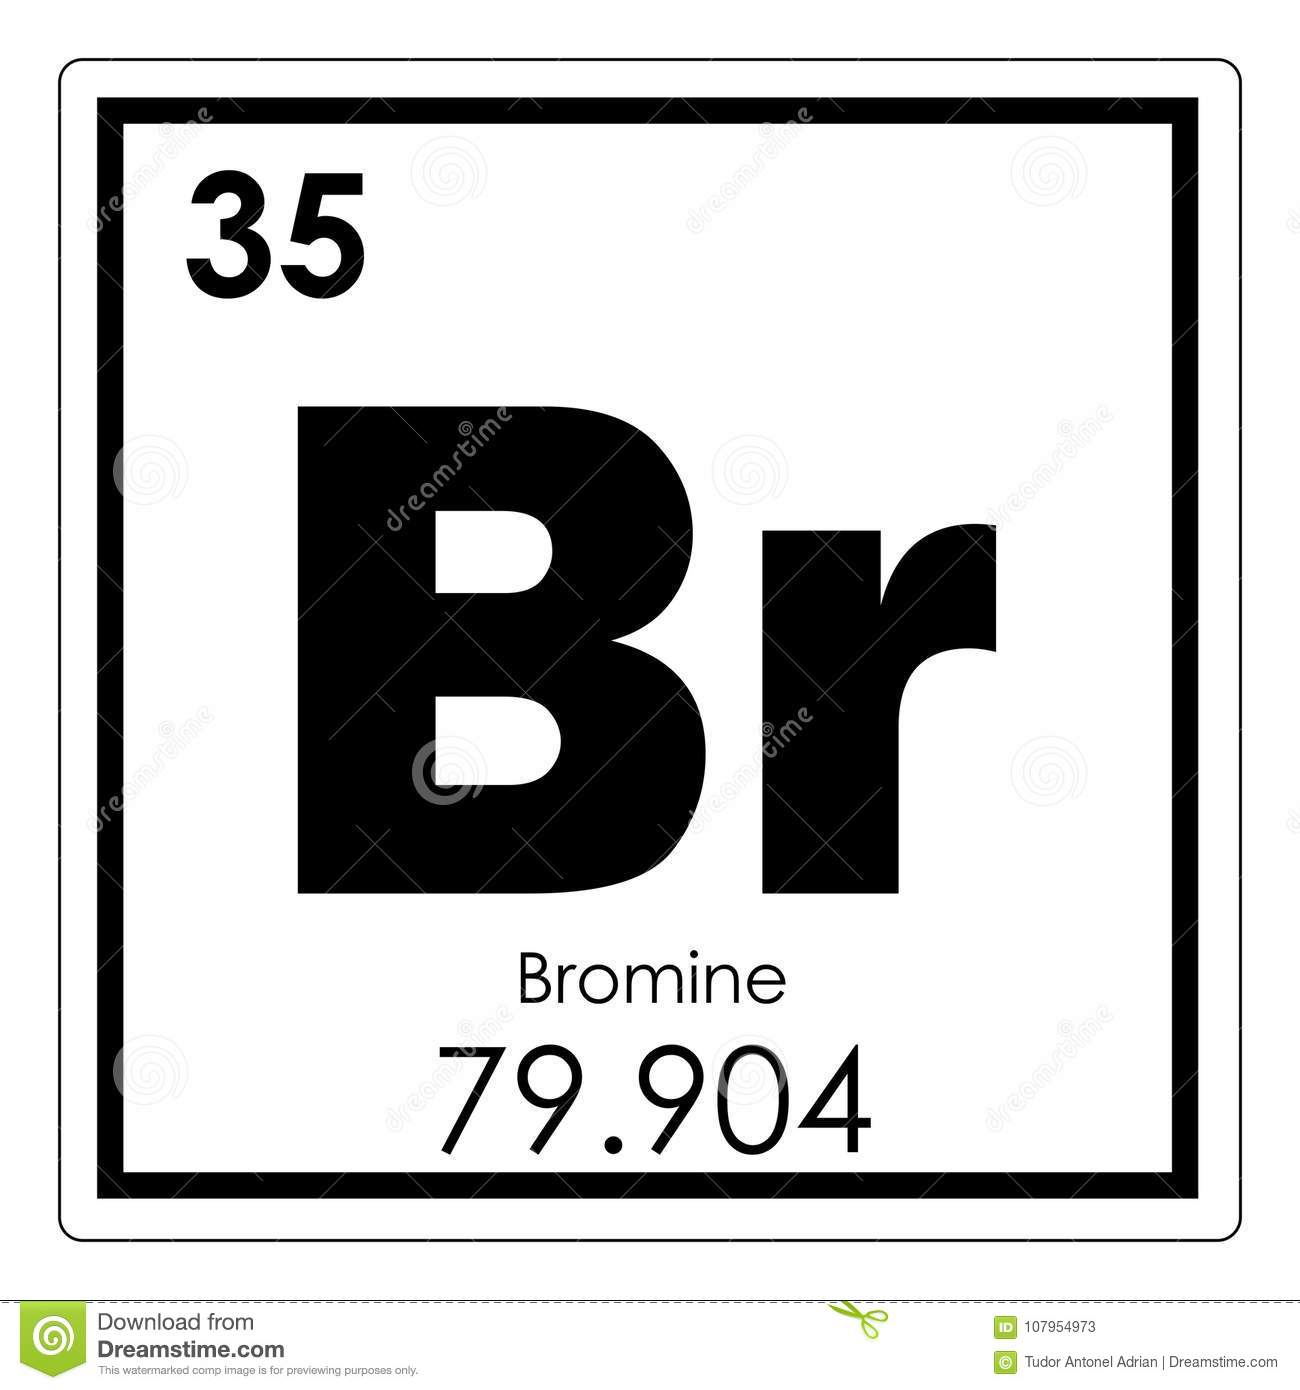 Bromine Chemical Element Stock Illustration Illustration Of Bromine